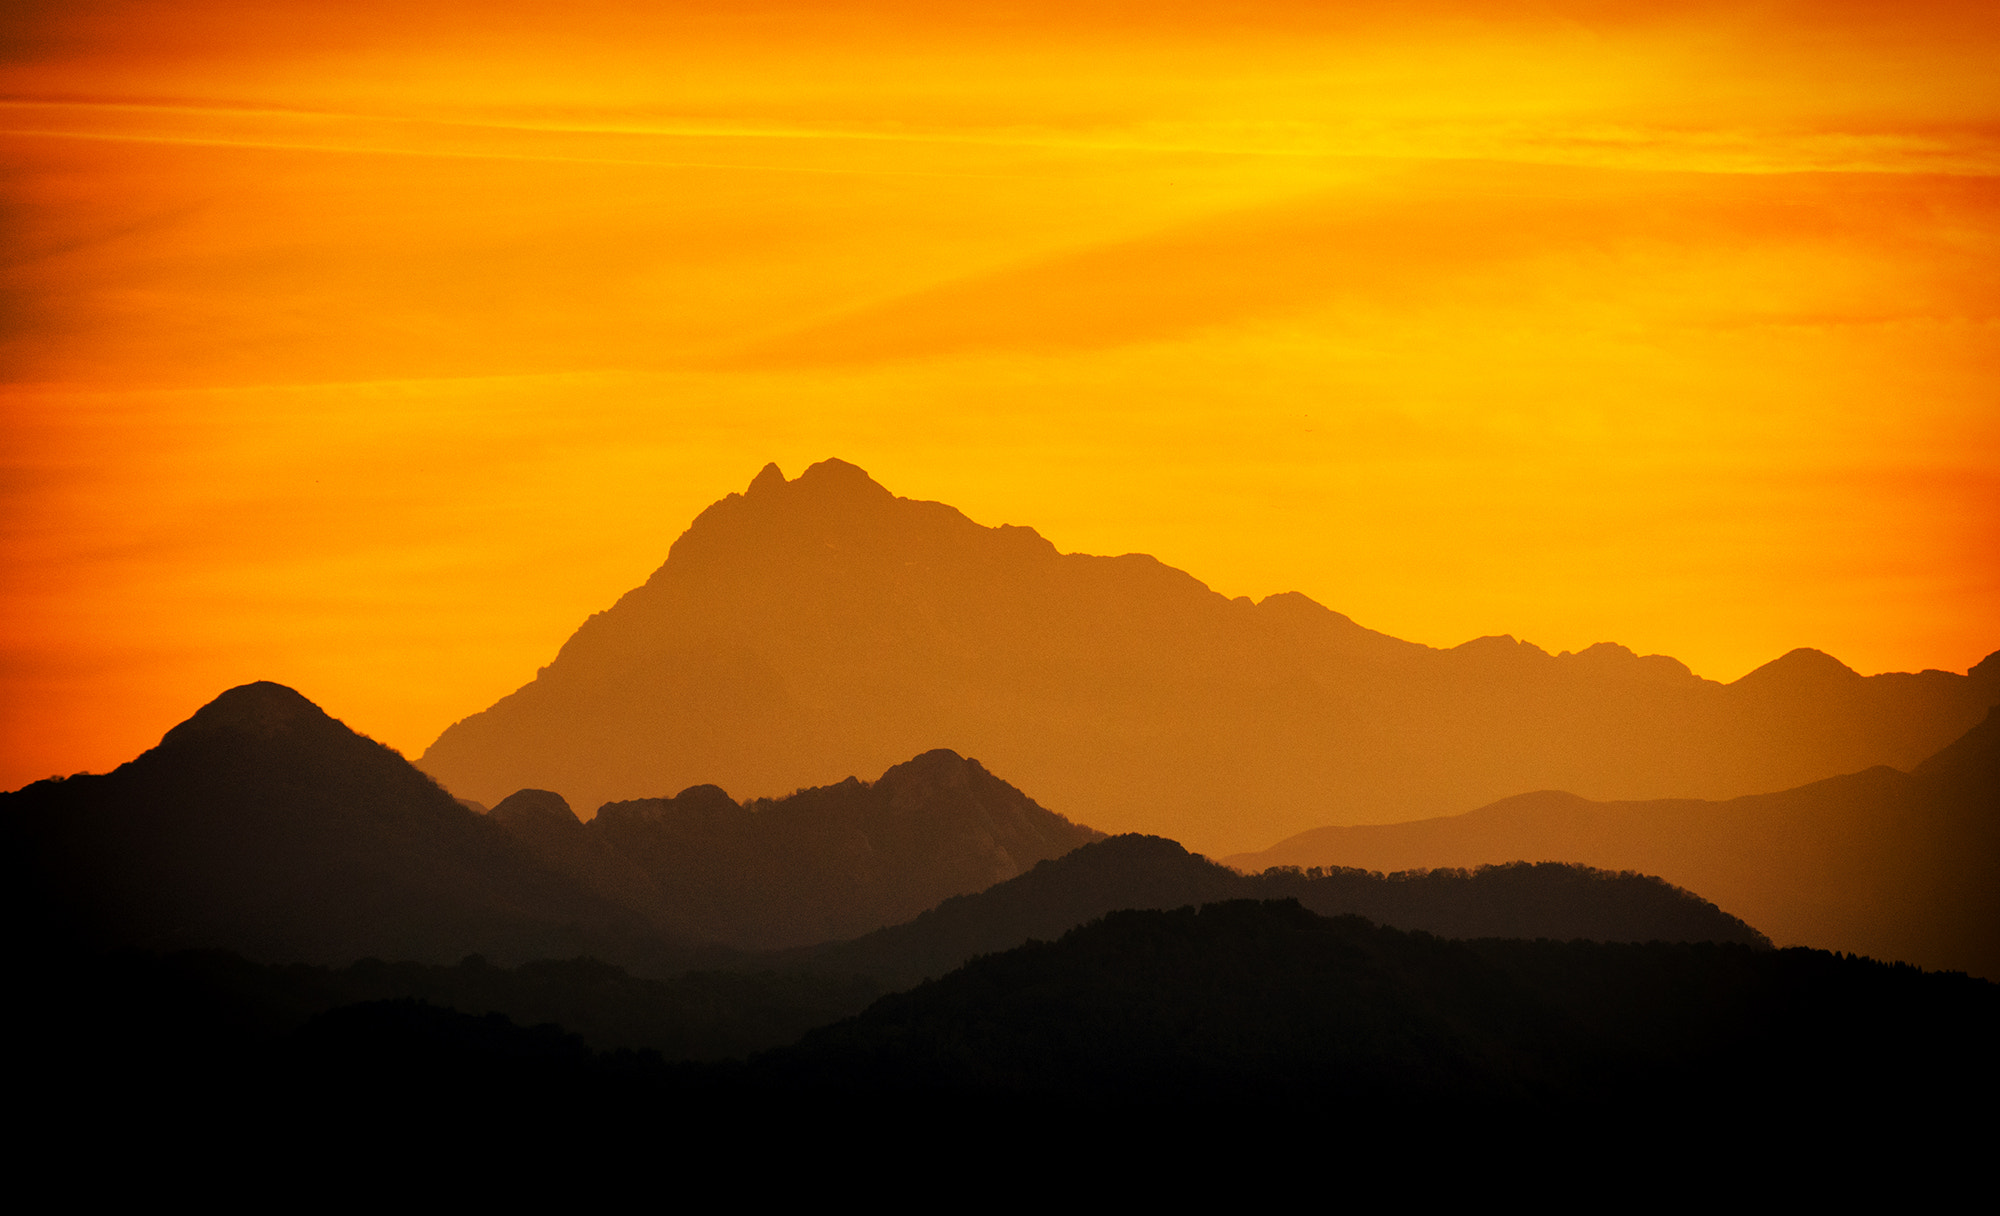 Photograph Sunset and Mountains by Peste Razor on 500px